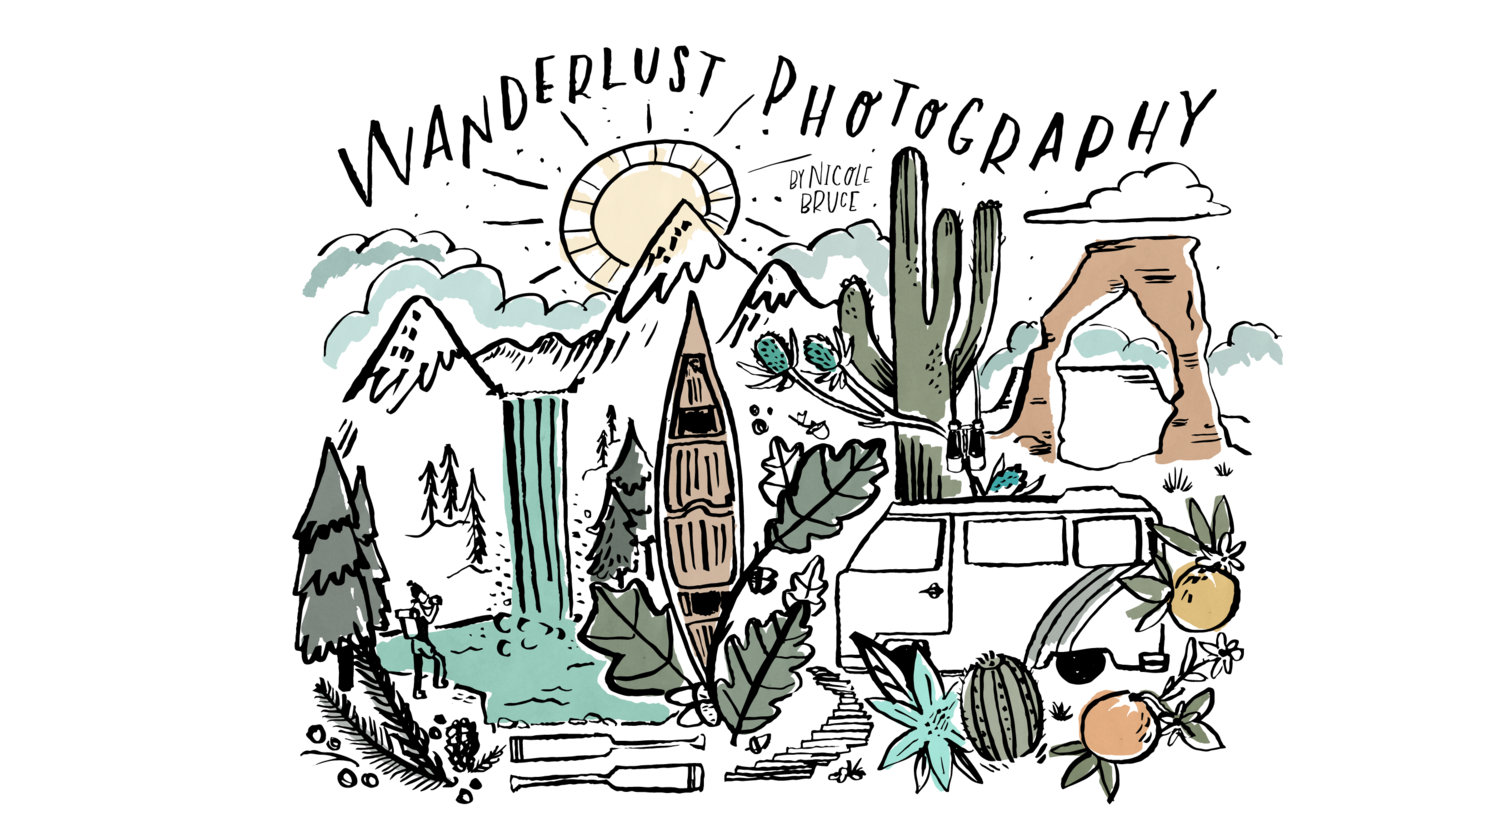 Wanderlust Photography by Nicole Bruce